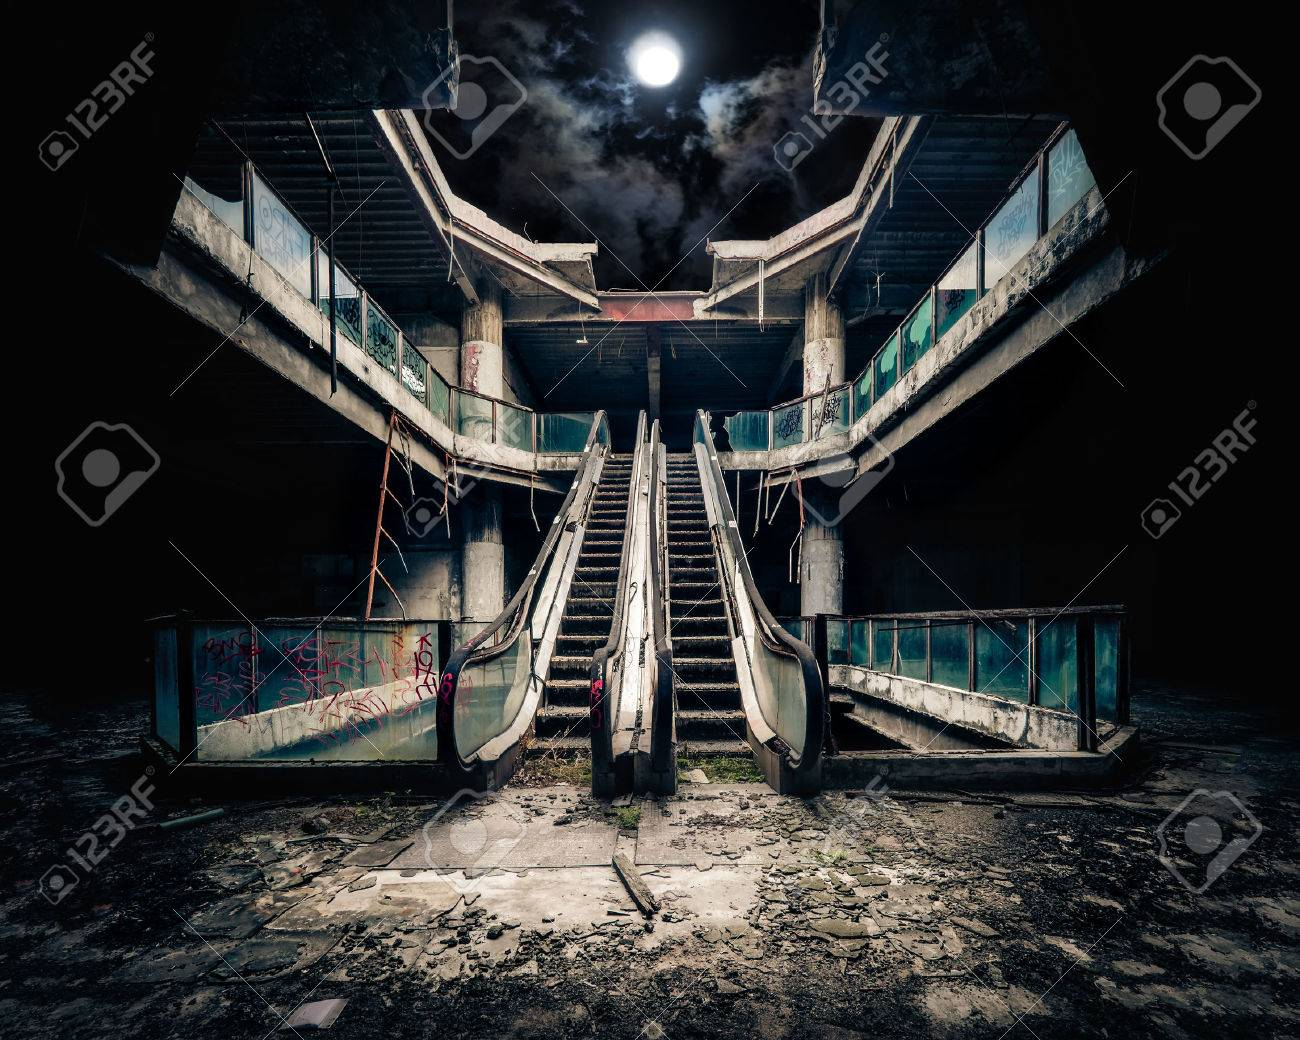 Dramatic View Of Damaged Escalators In Abandoned Building Full Stock Photo Picture And Royalty Free Image Image 49638798